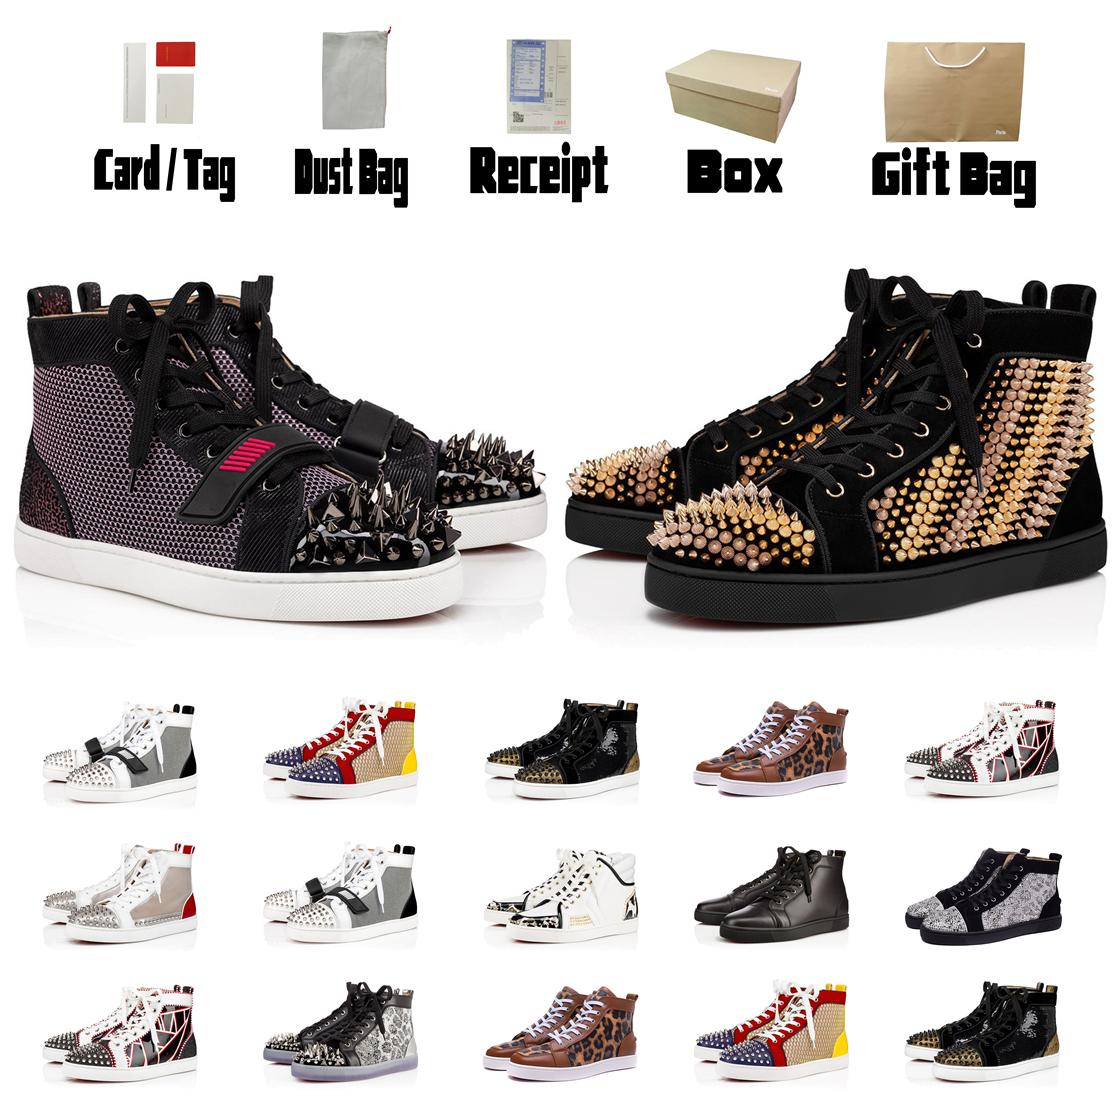 Top Red Bottom Leather Luxury Flat Soled Casual Shoes Fashion Black White Gold Pink Party Couple Dress Shoes With Box Men Boots Booties